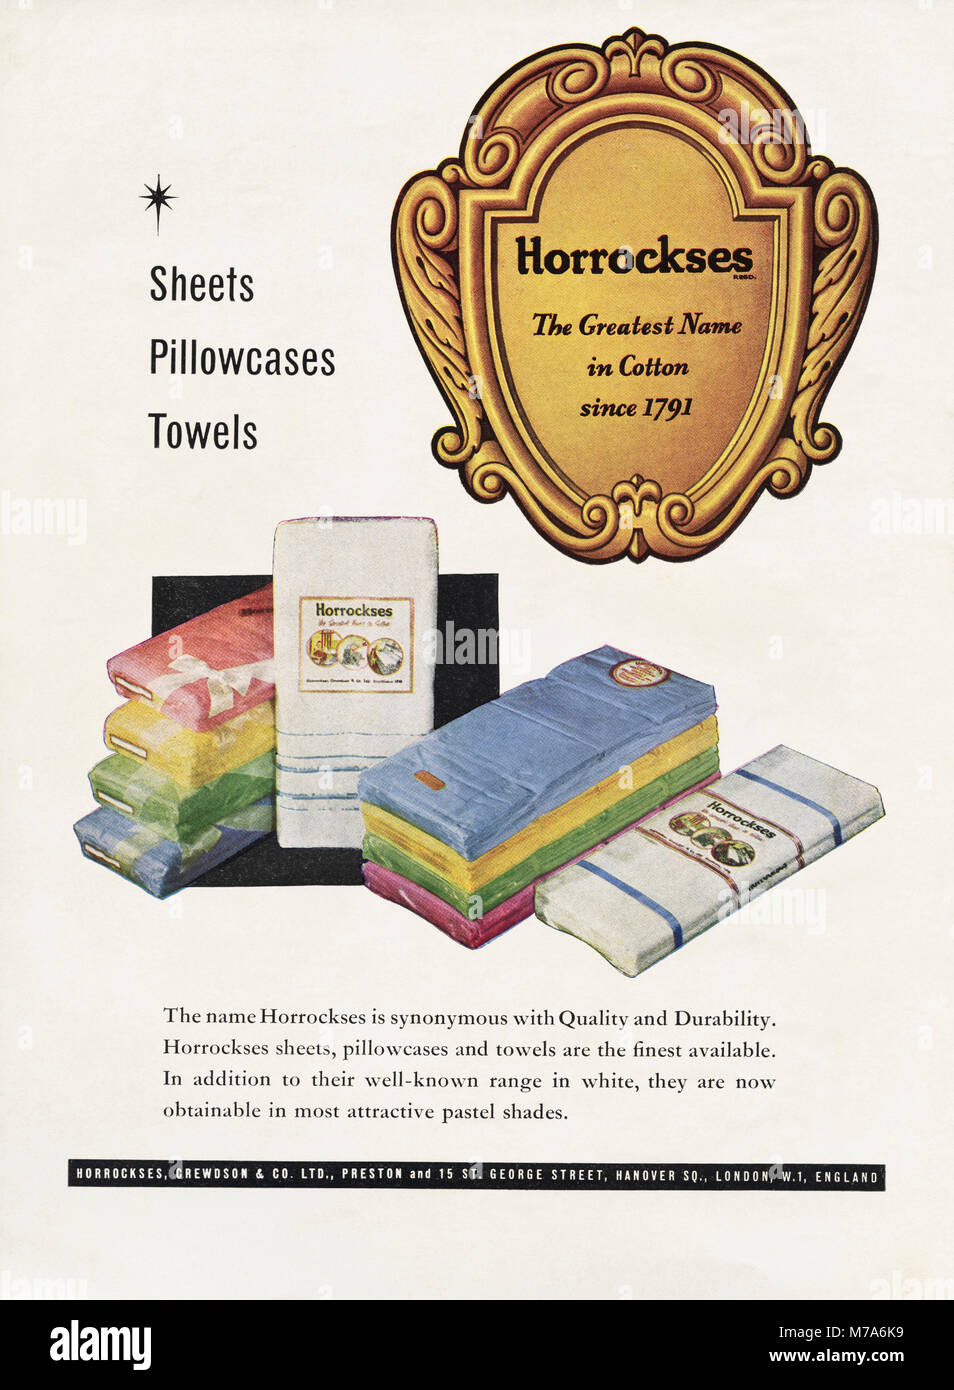 hight resolution of 1950s original old vintage advertisement advertising cotton sheets pillowcases towels by horrockses in magazine